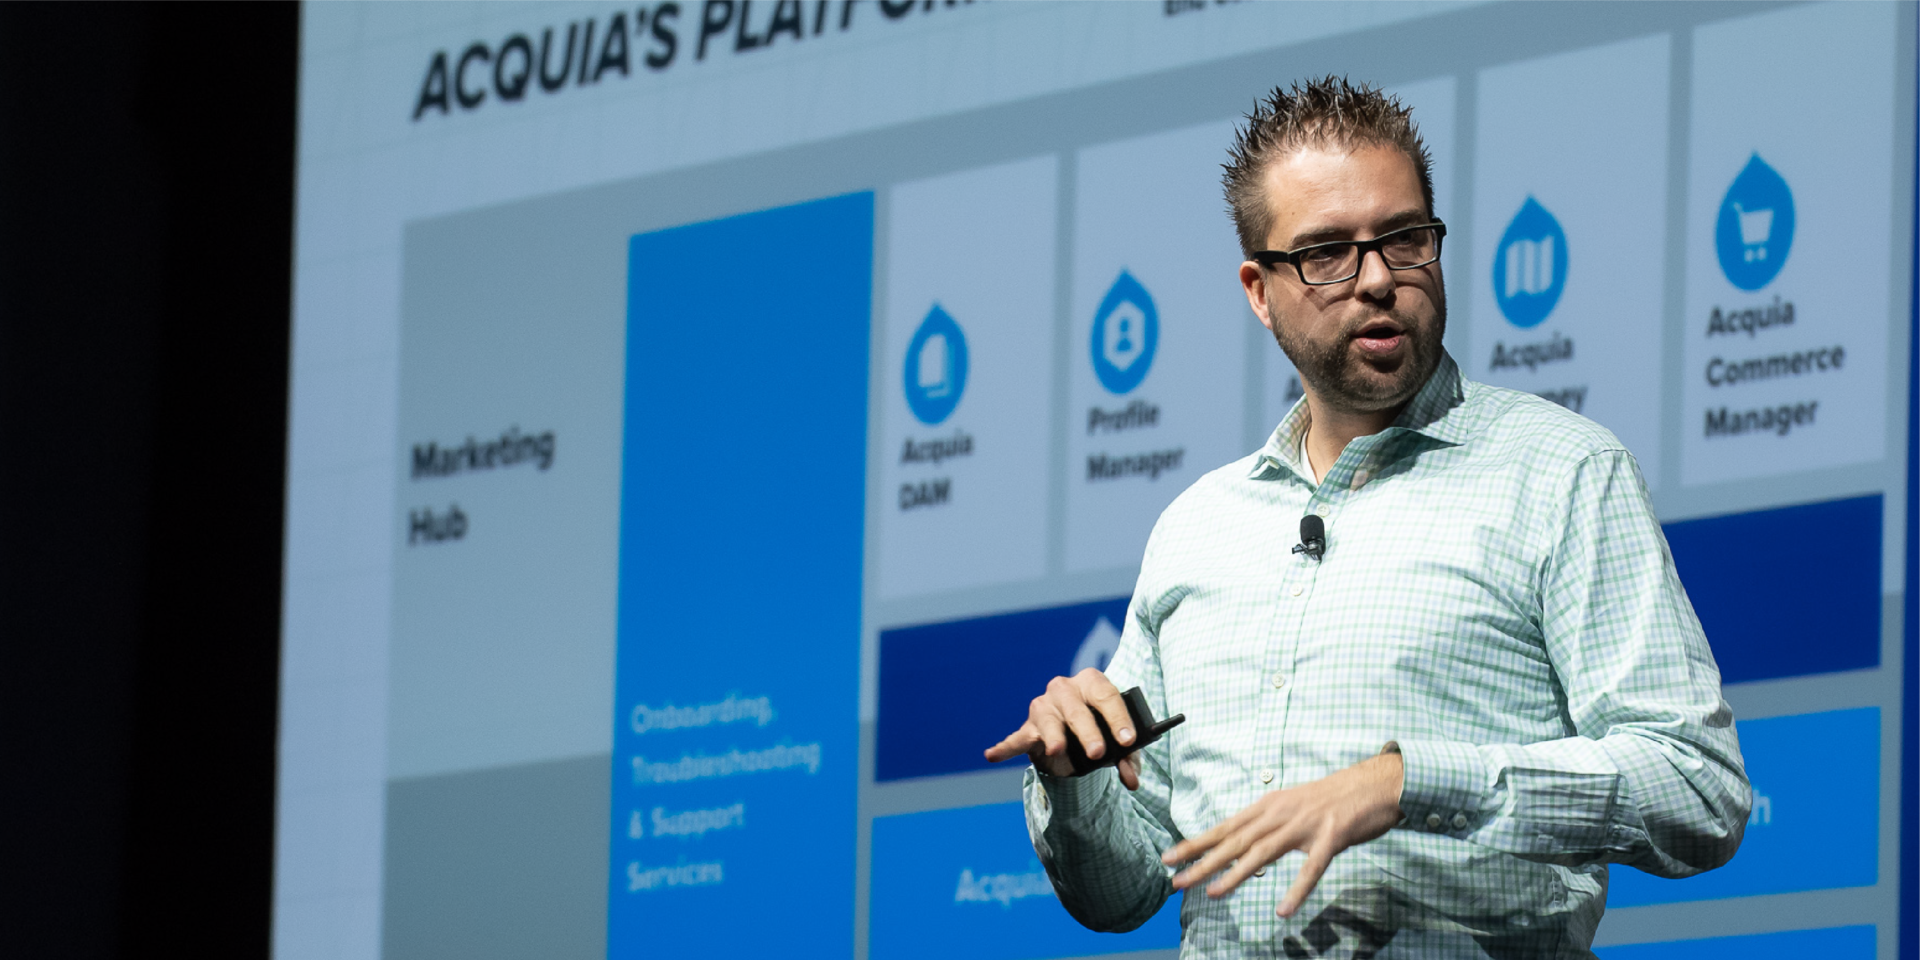 Dries Engage Acquia Platform Background